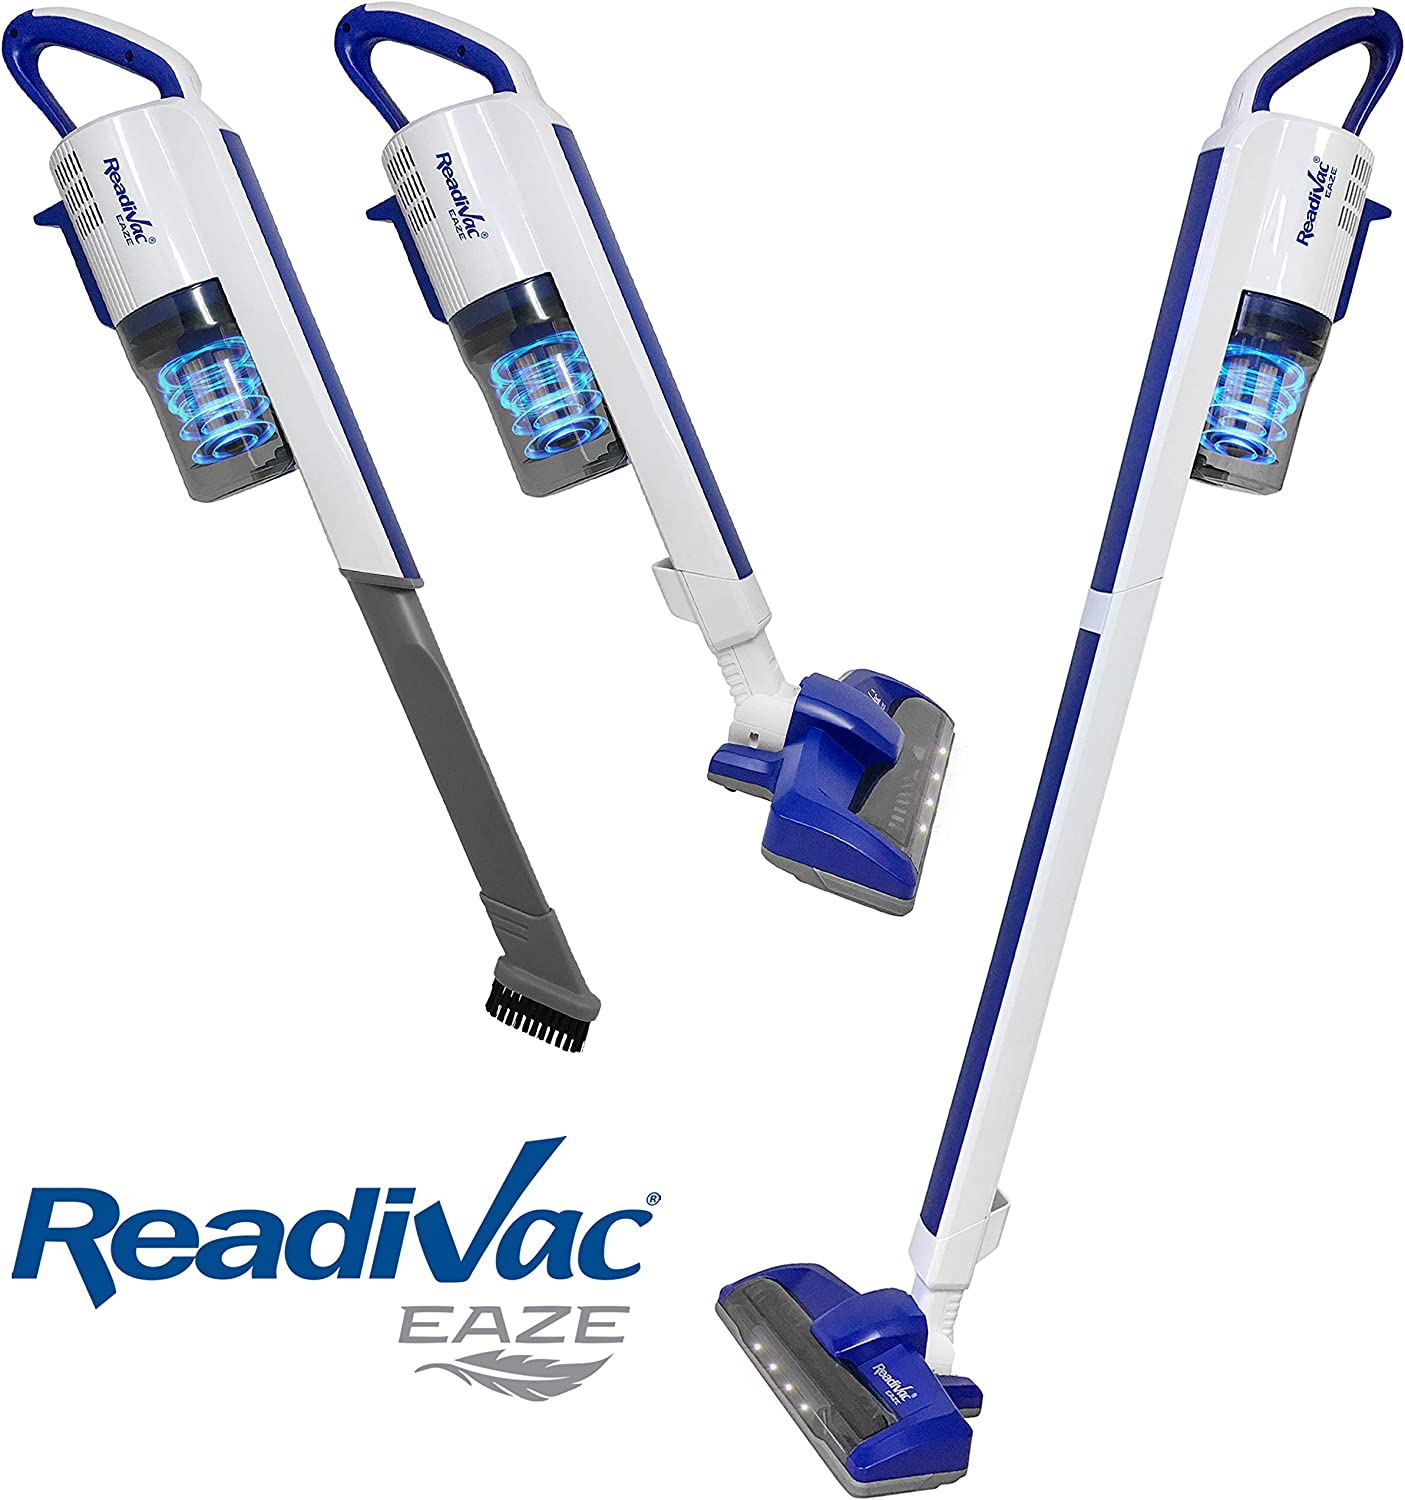 ReadiVac Eaze RS1030, Cordless Stick Vacuum Cleaner, Portable Lightweight Upright Vac with Powerful Suction, Rechargeable Handheld Vac for Pet Hair, Hardwood Floors and Carpet